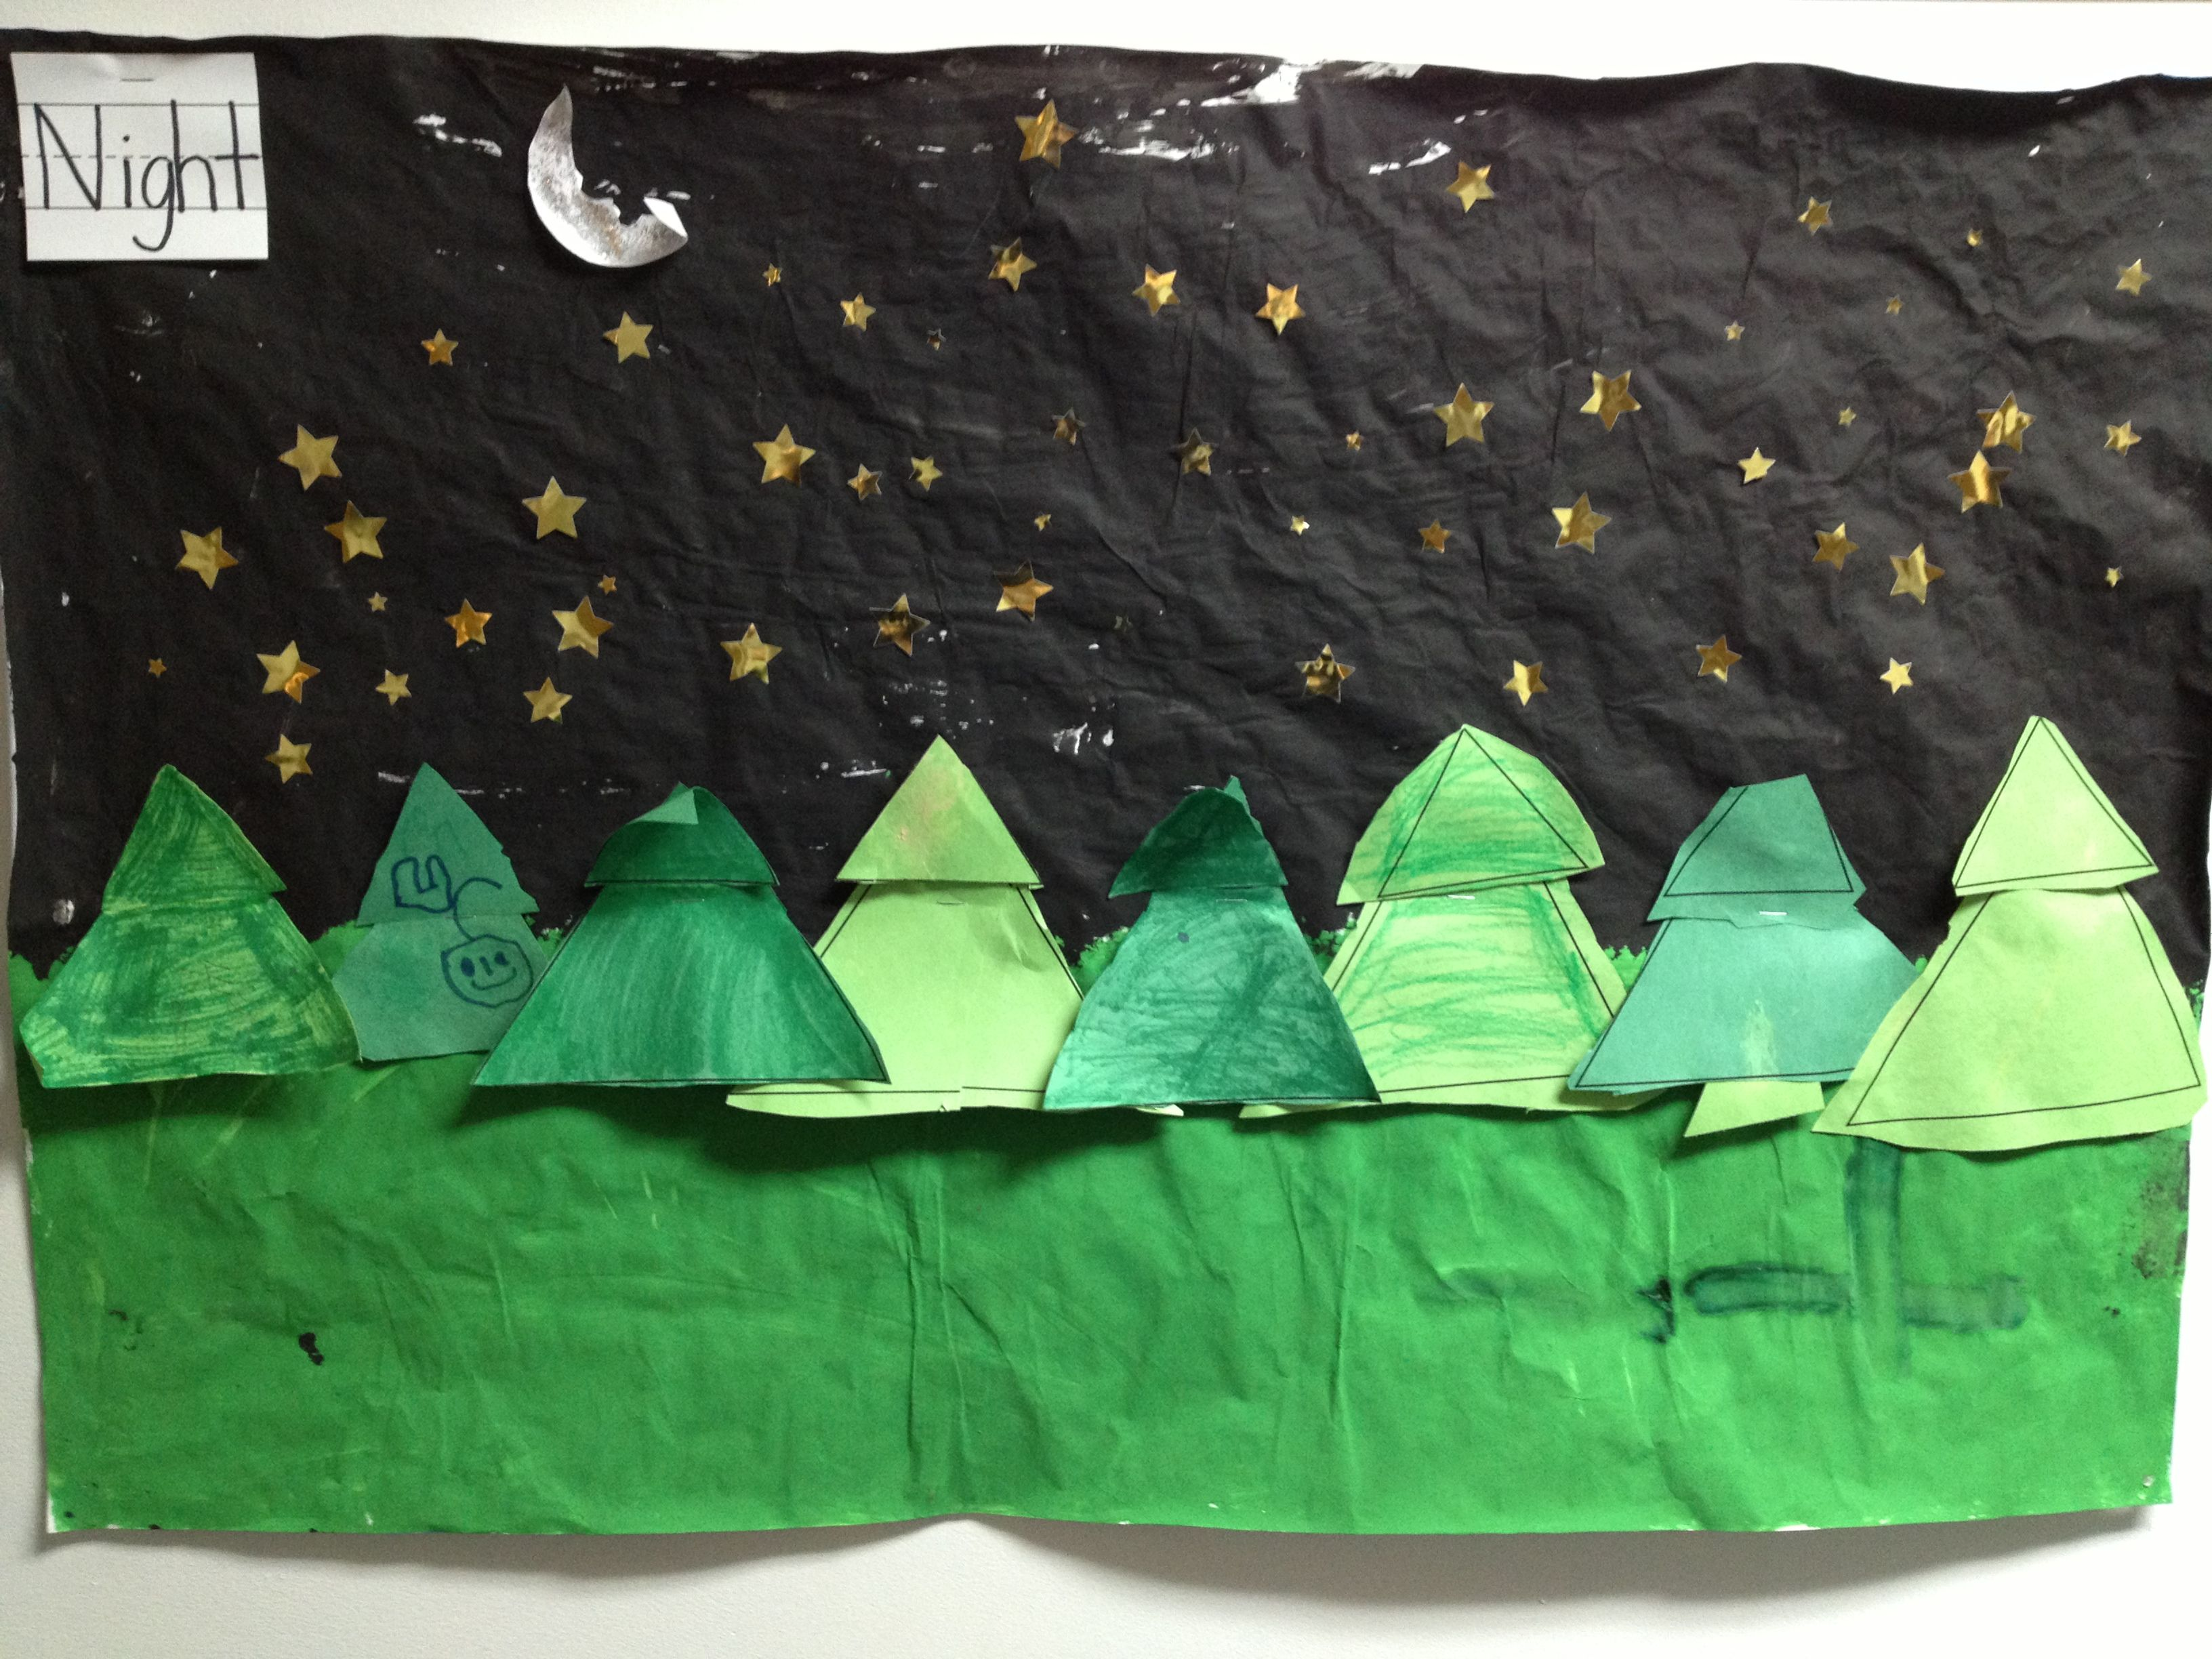 Classroom Collaborative Art Project A Night Time Forest